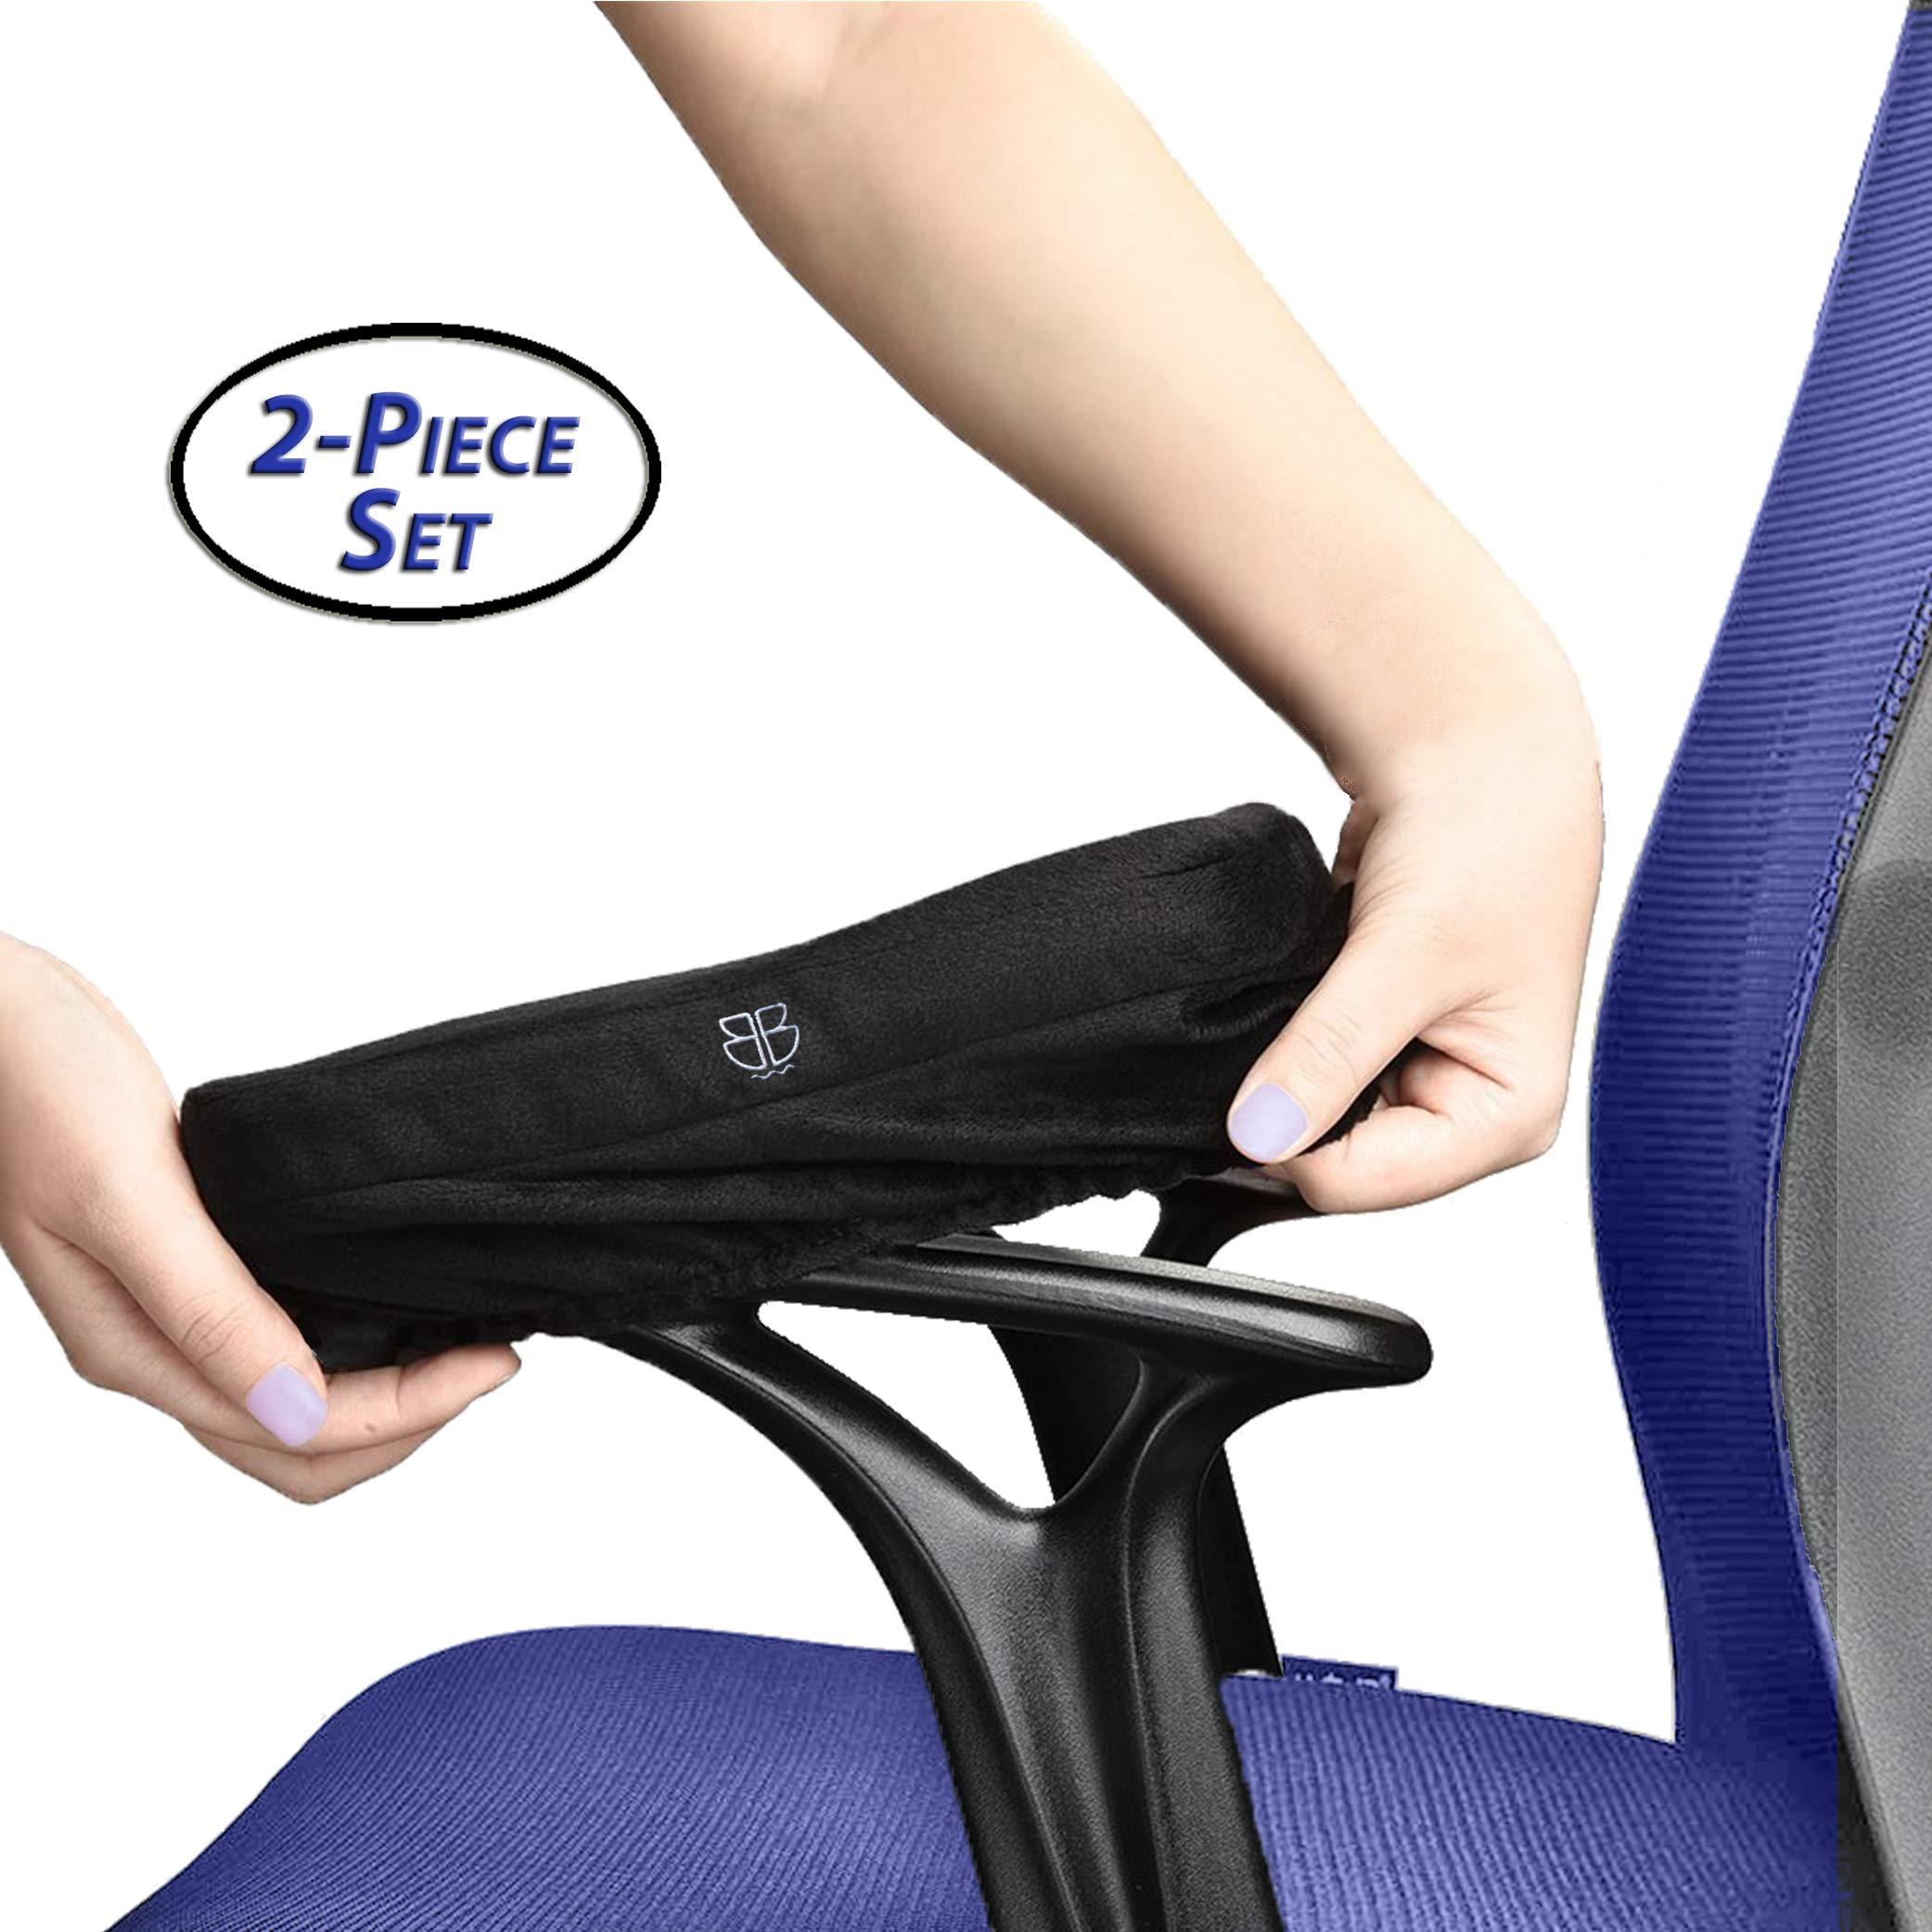 Armrest Pads: Ergonomic Memory Foam High Density Anti-Slip Arm Rest Covers. Jumbo Computer Elbow Cushion Arm Pads. Universal - Office, Gaming, Wheelchair. Relieves Forearm Pain Fatigue. 2PC Set